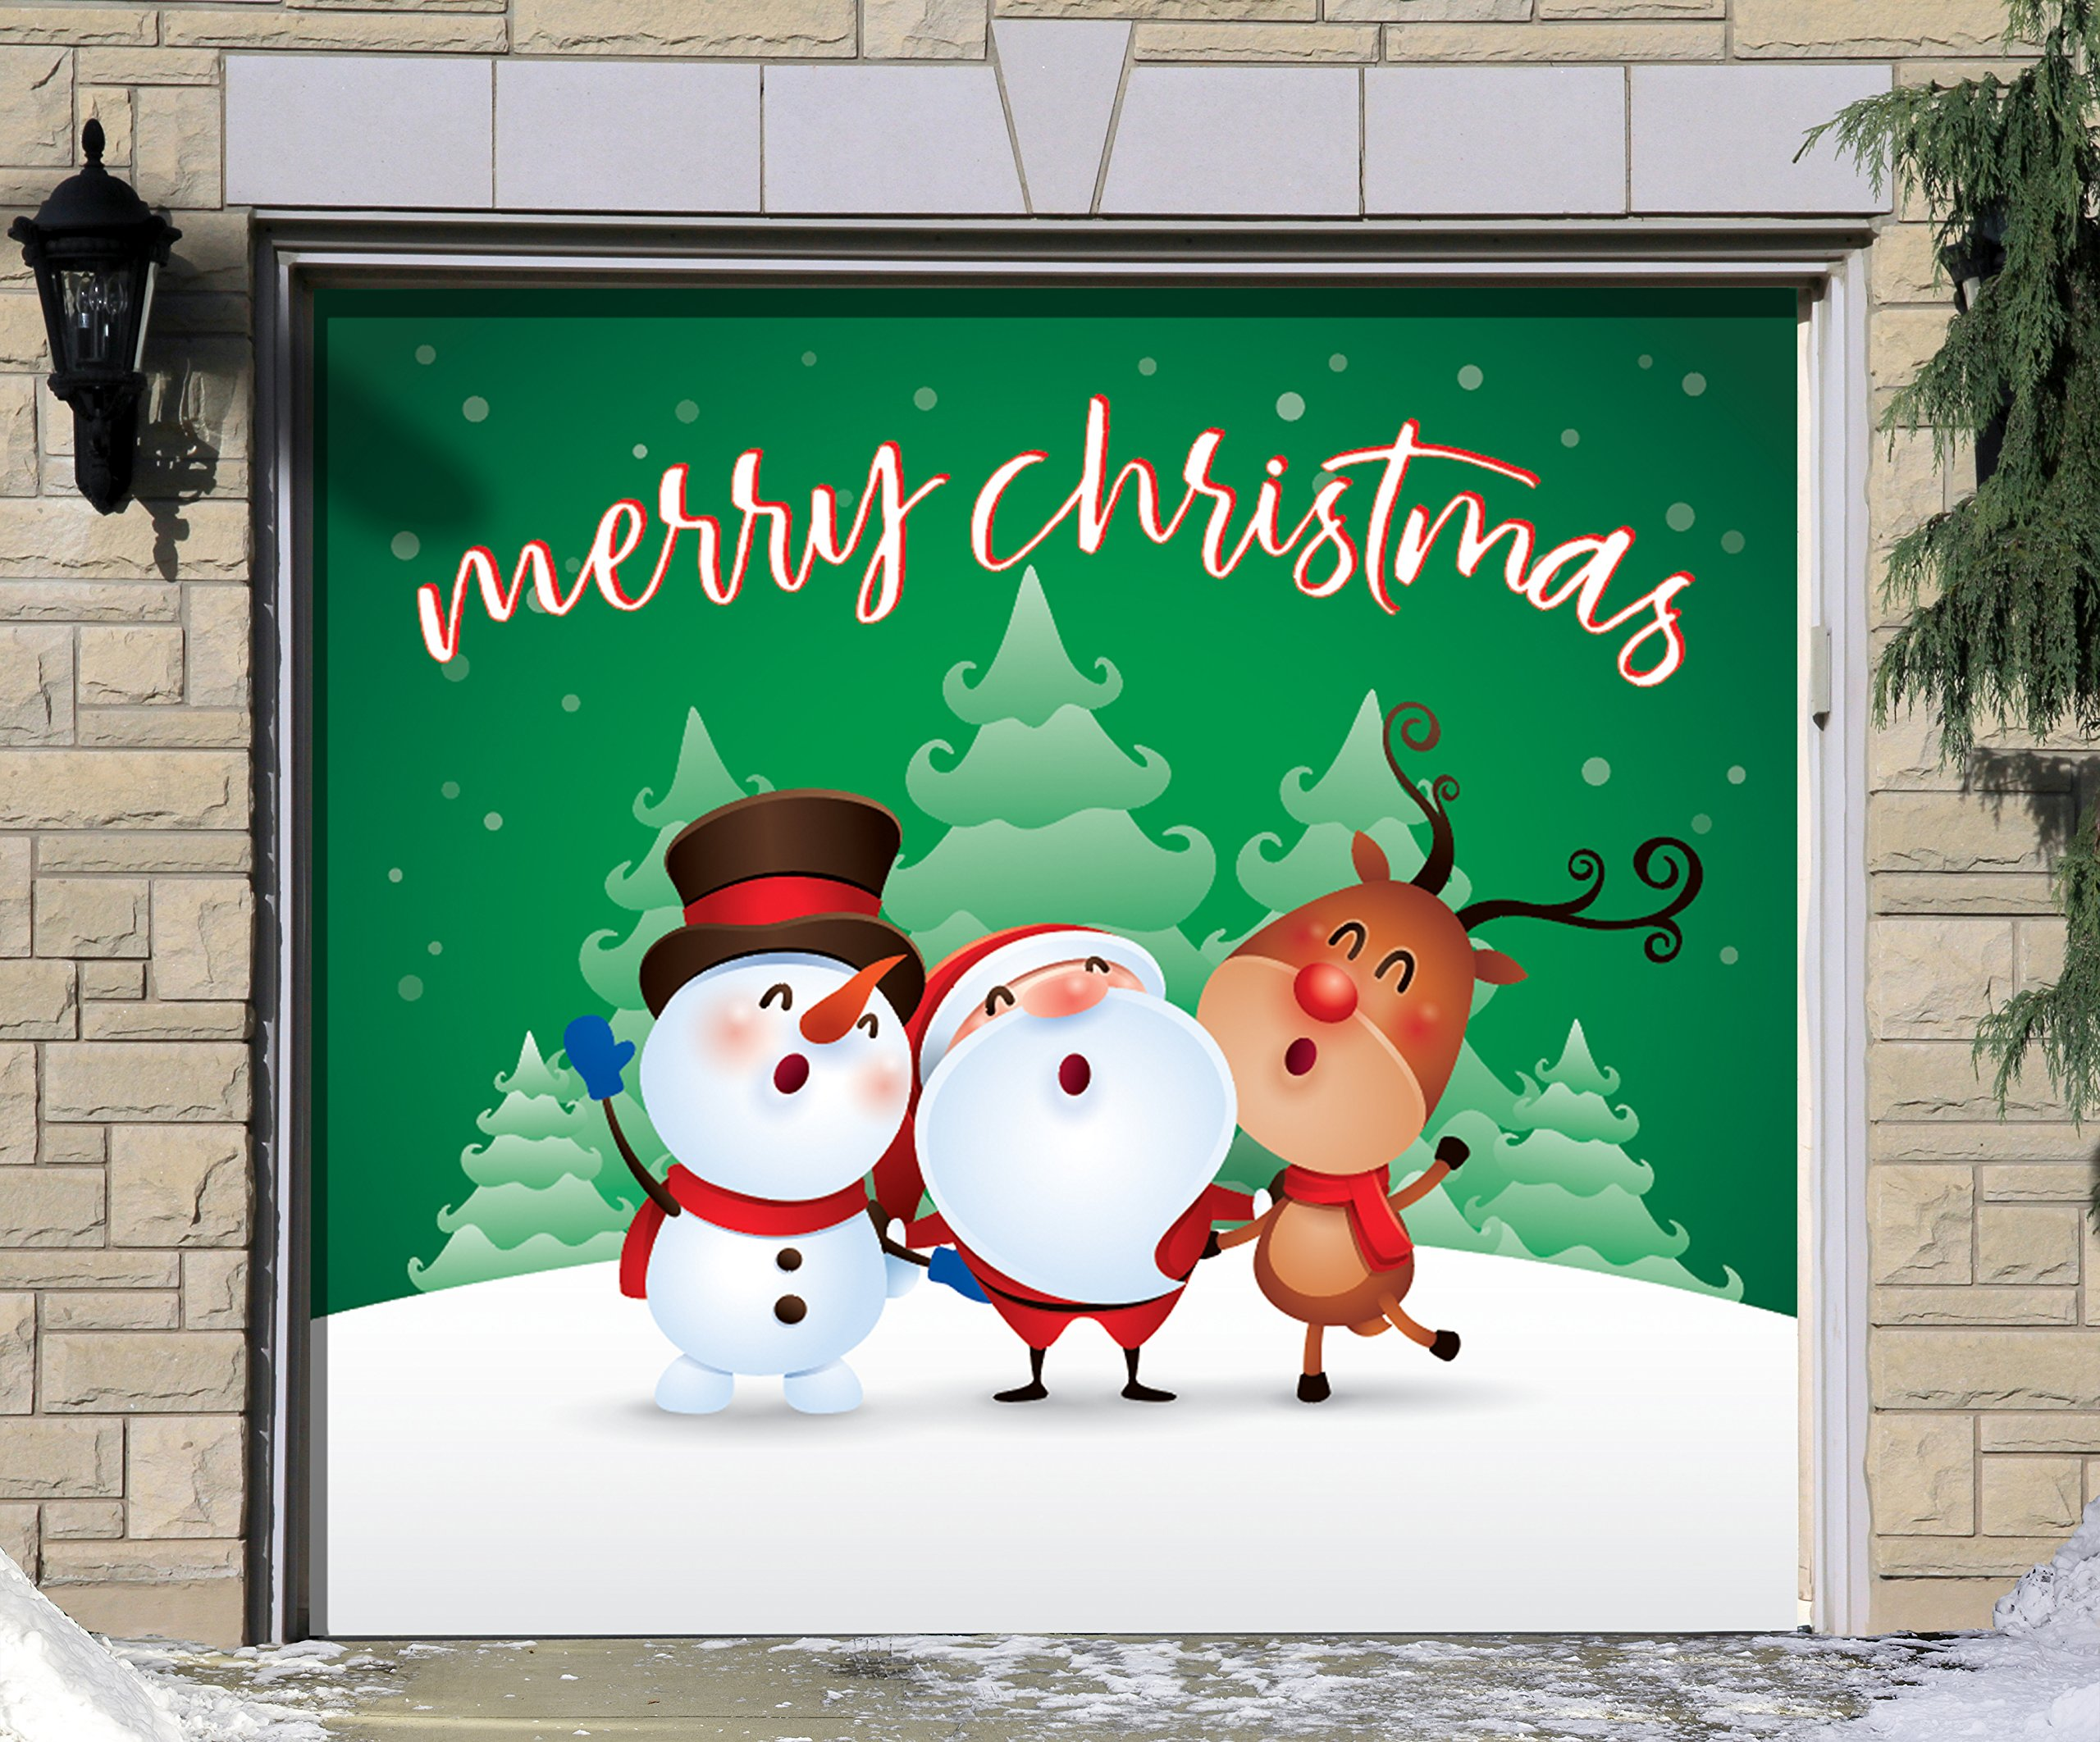 Outdoor Christmas Holiday Garage Door Banner Cover Mural Décoration - Christmas Characters Merry Christmas Winter - Outdoor Christmas Holiday Garage Door Banner Décor Sign 7'x8' by Victory Corps